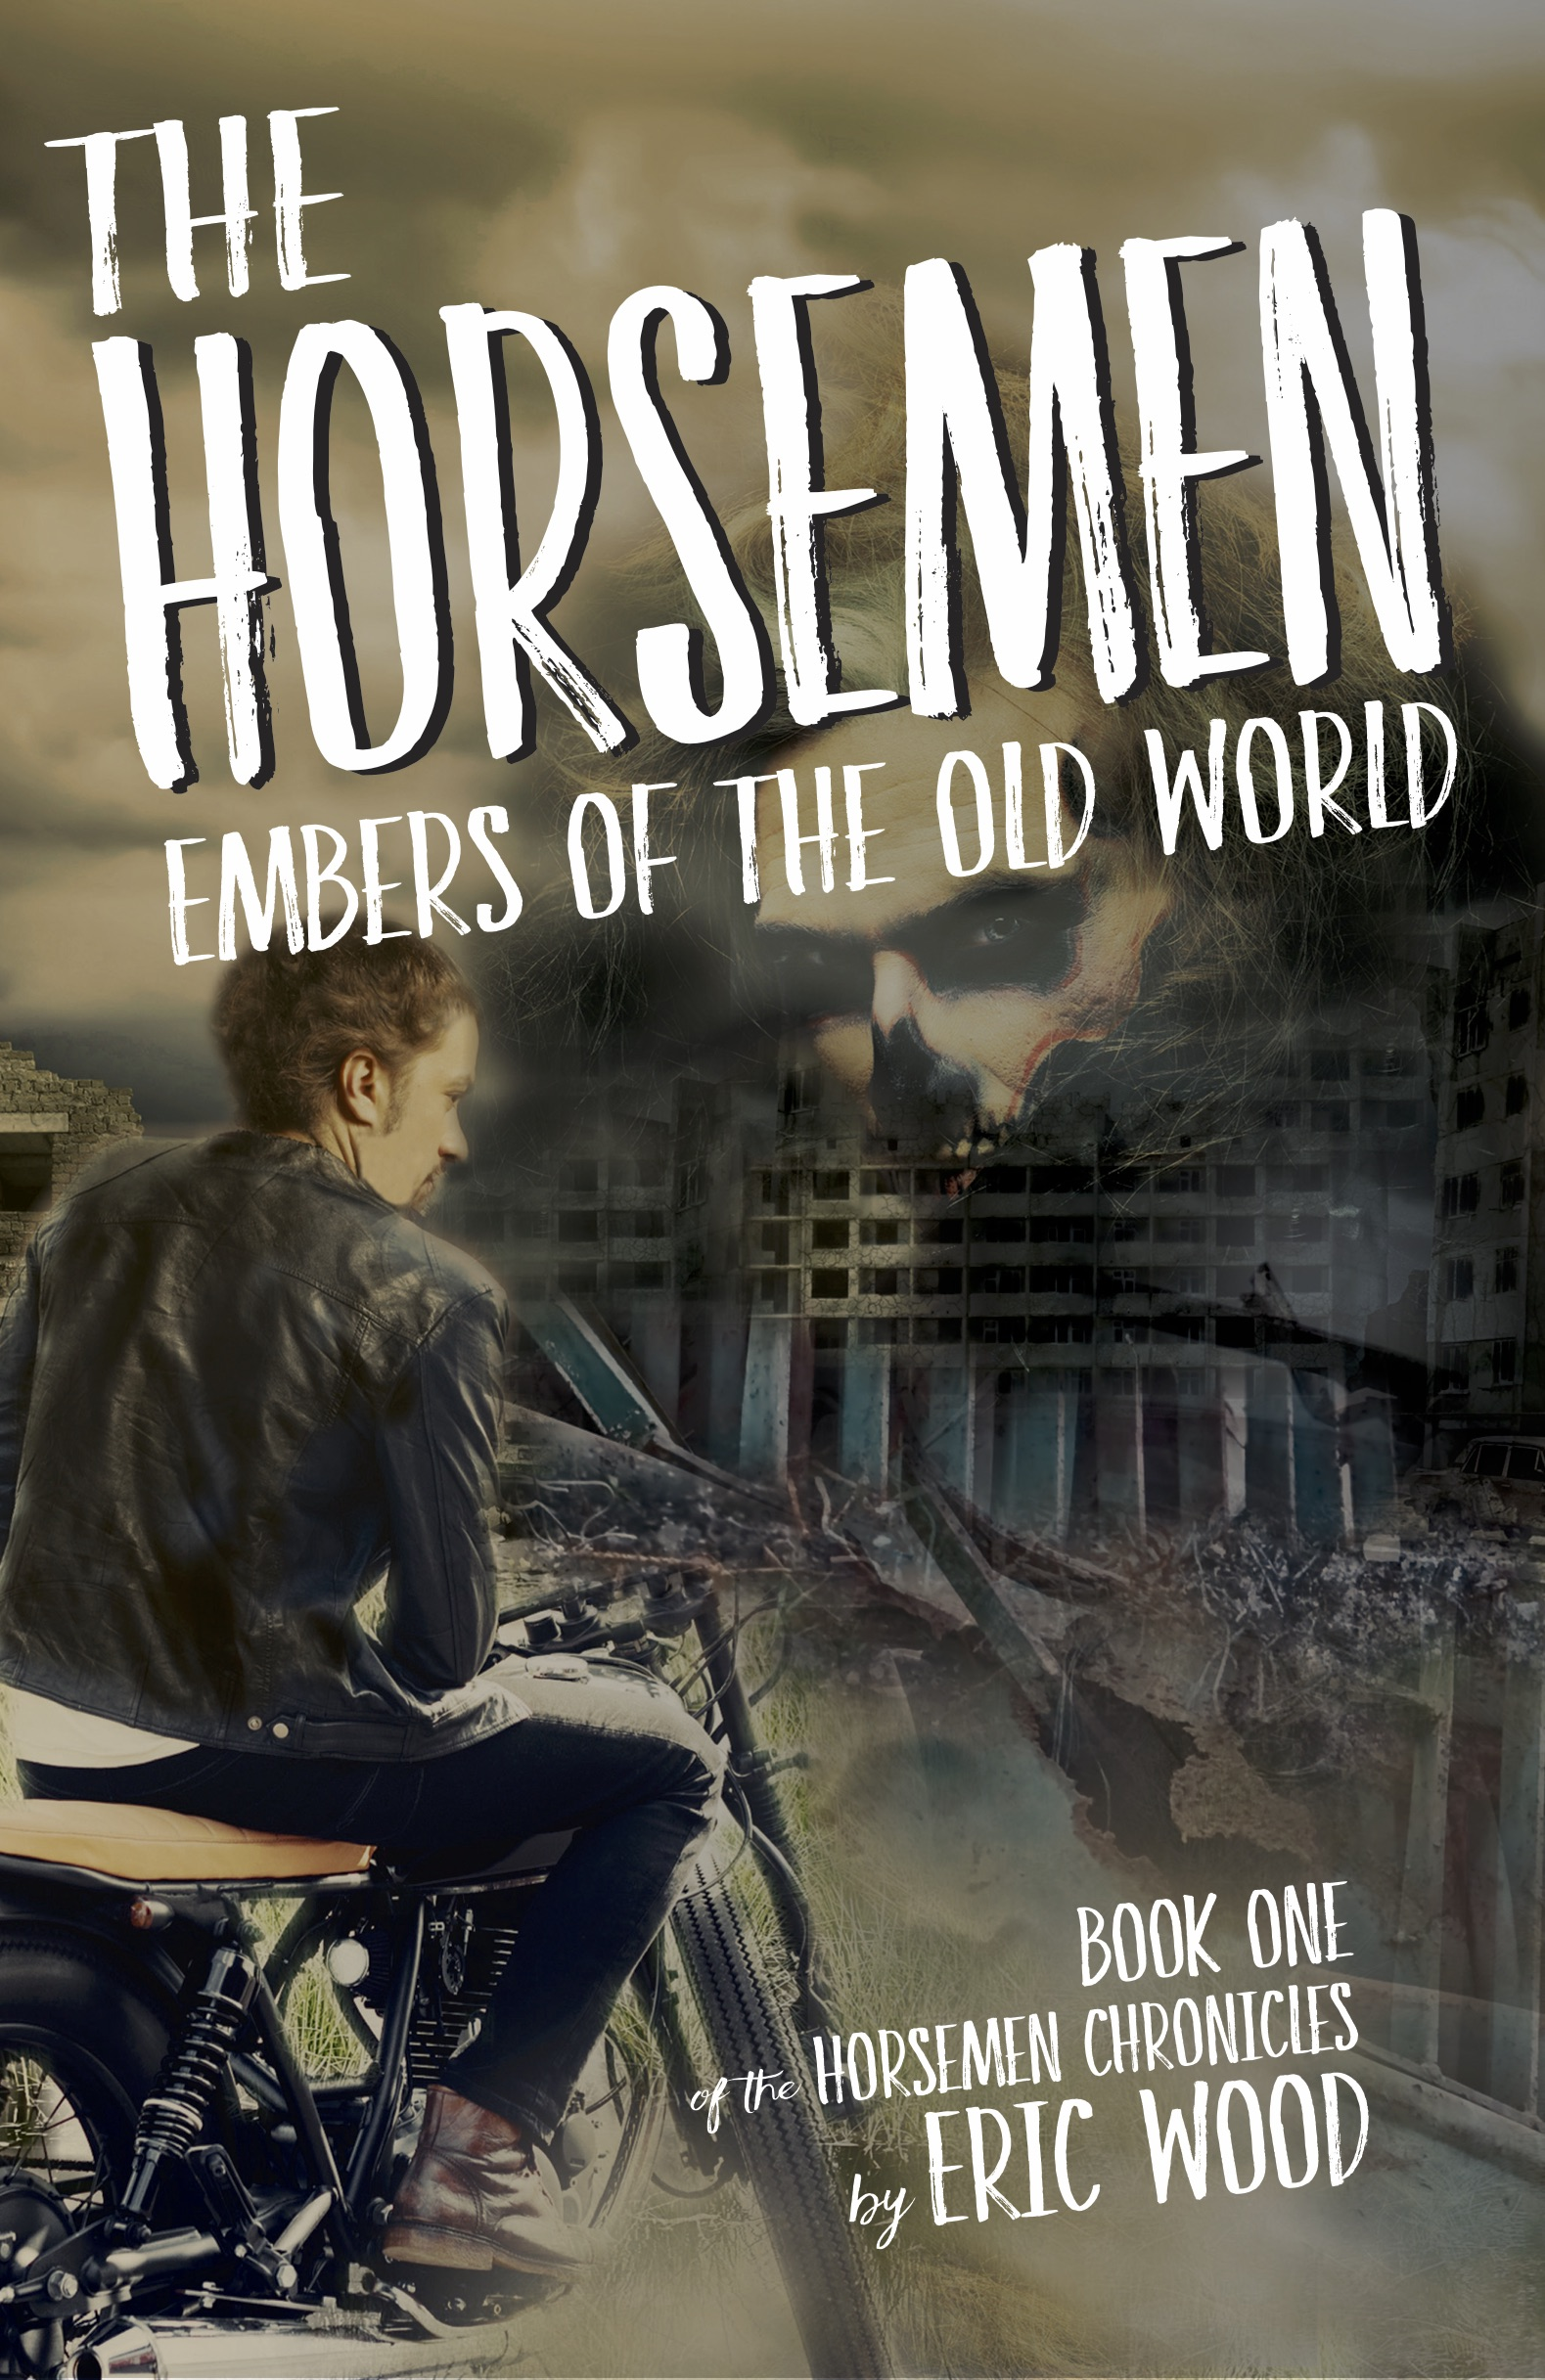 - THE HORSEMEN IS CLASSIC, ADVENTURE FICTION, FULL OF SHOOT- EM-UPS, NARROW ESCAPES AND LOADS OF GORY MONSTERS. EXCITING SUMMER READING FOR BOTH BOYS AND GIRLS.More about the bookBuy the book on Amazon